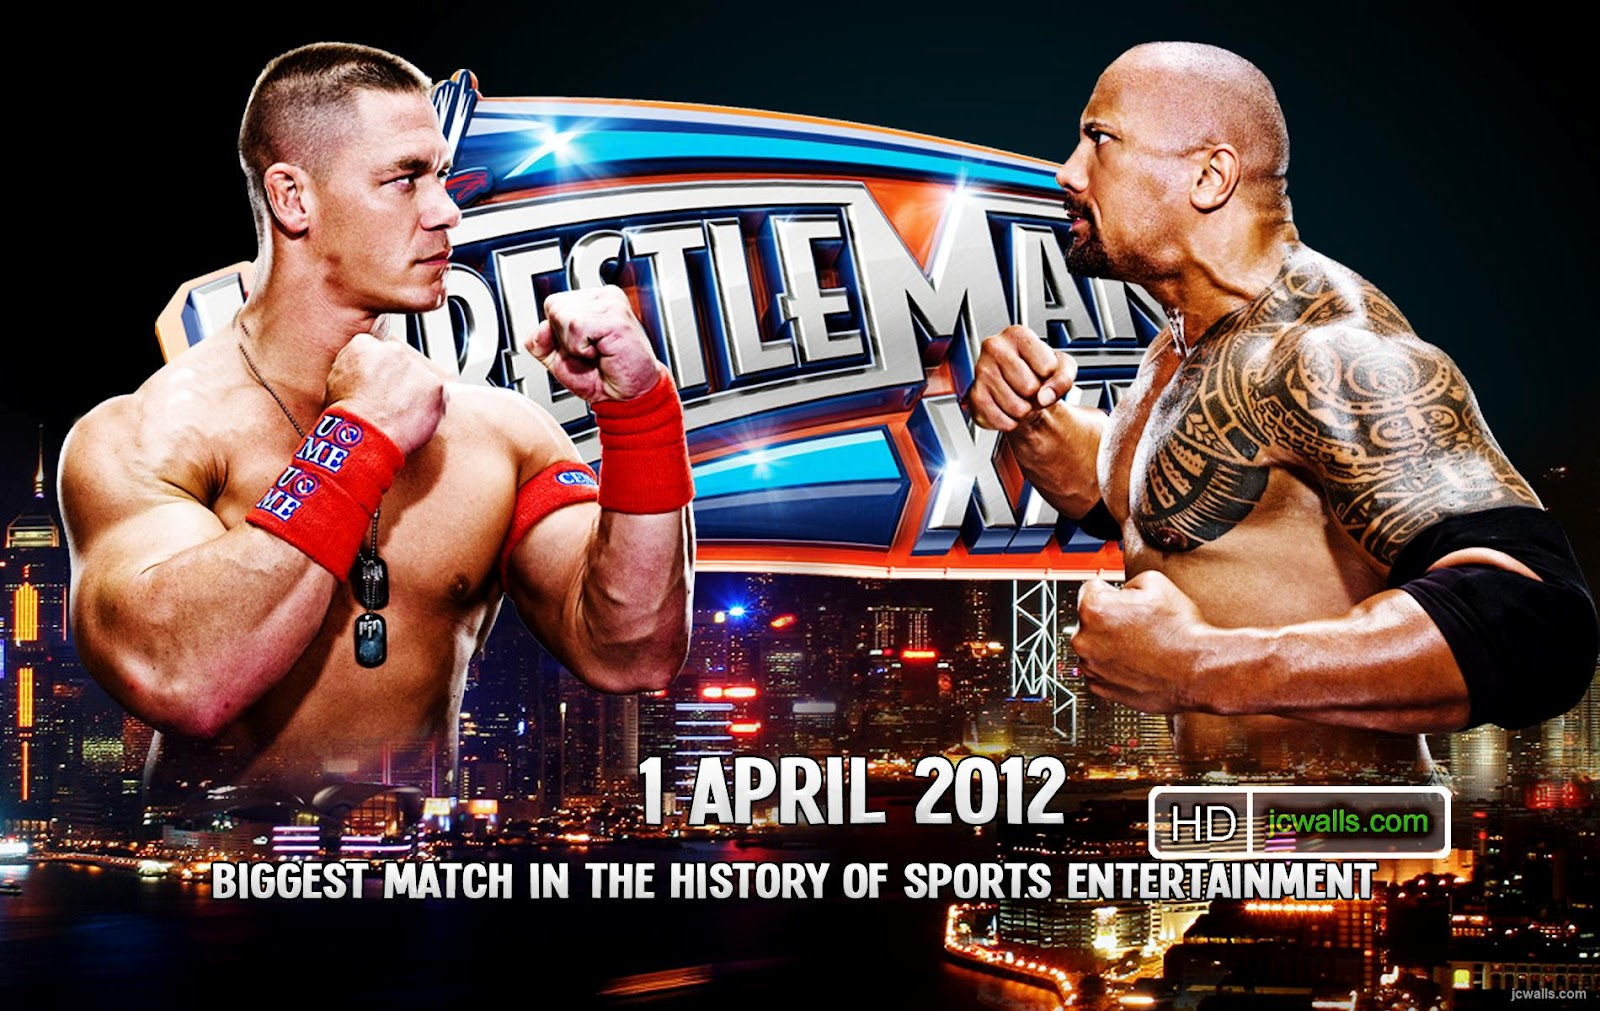 john cena vs the rock